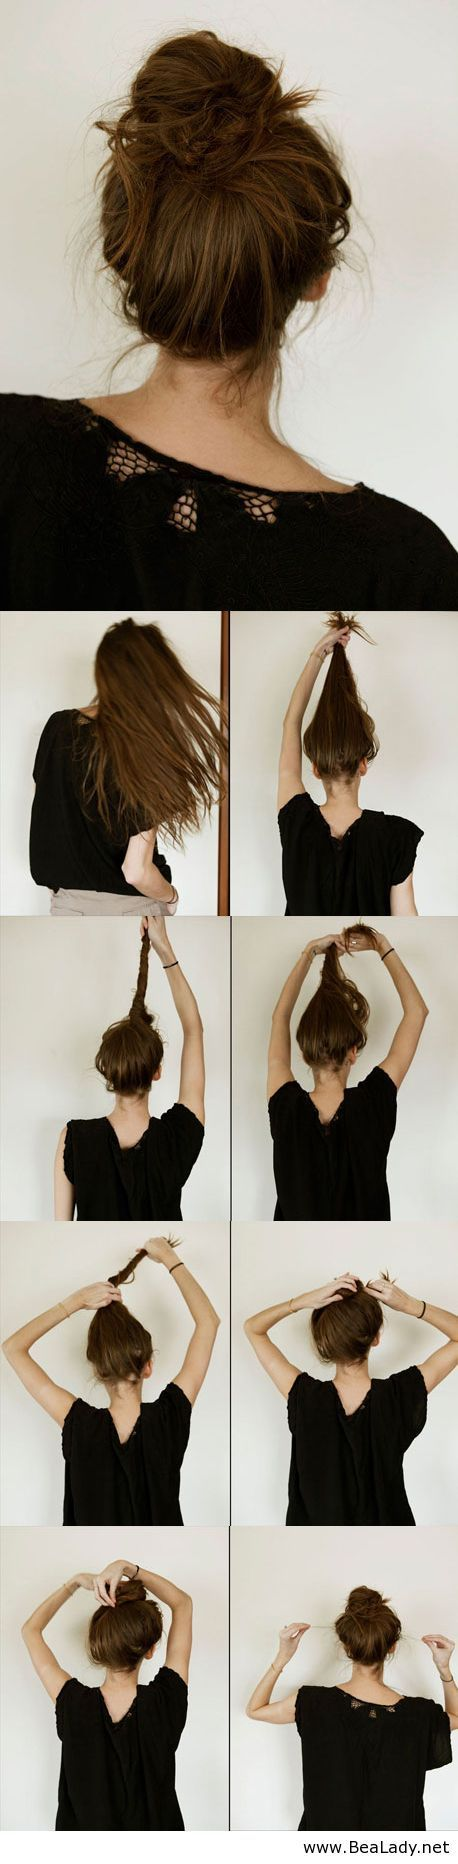 Super Easy Knotted Bun Updo and Simple Bun Hairstyle Tutorials - BeaLady.net on imgfave